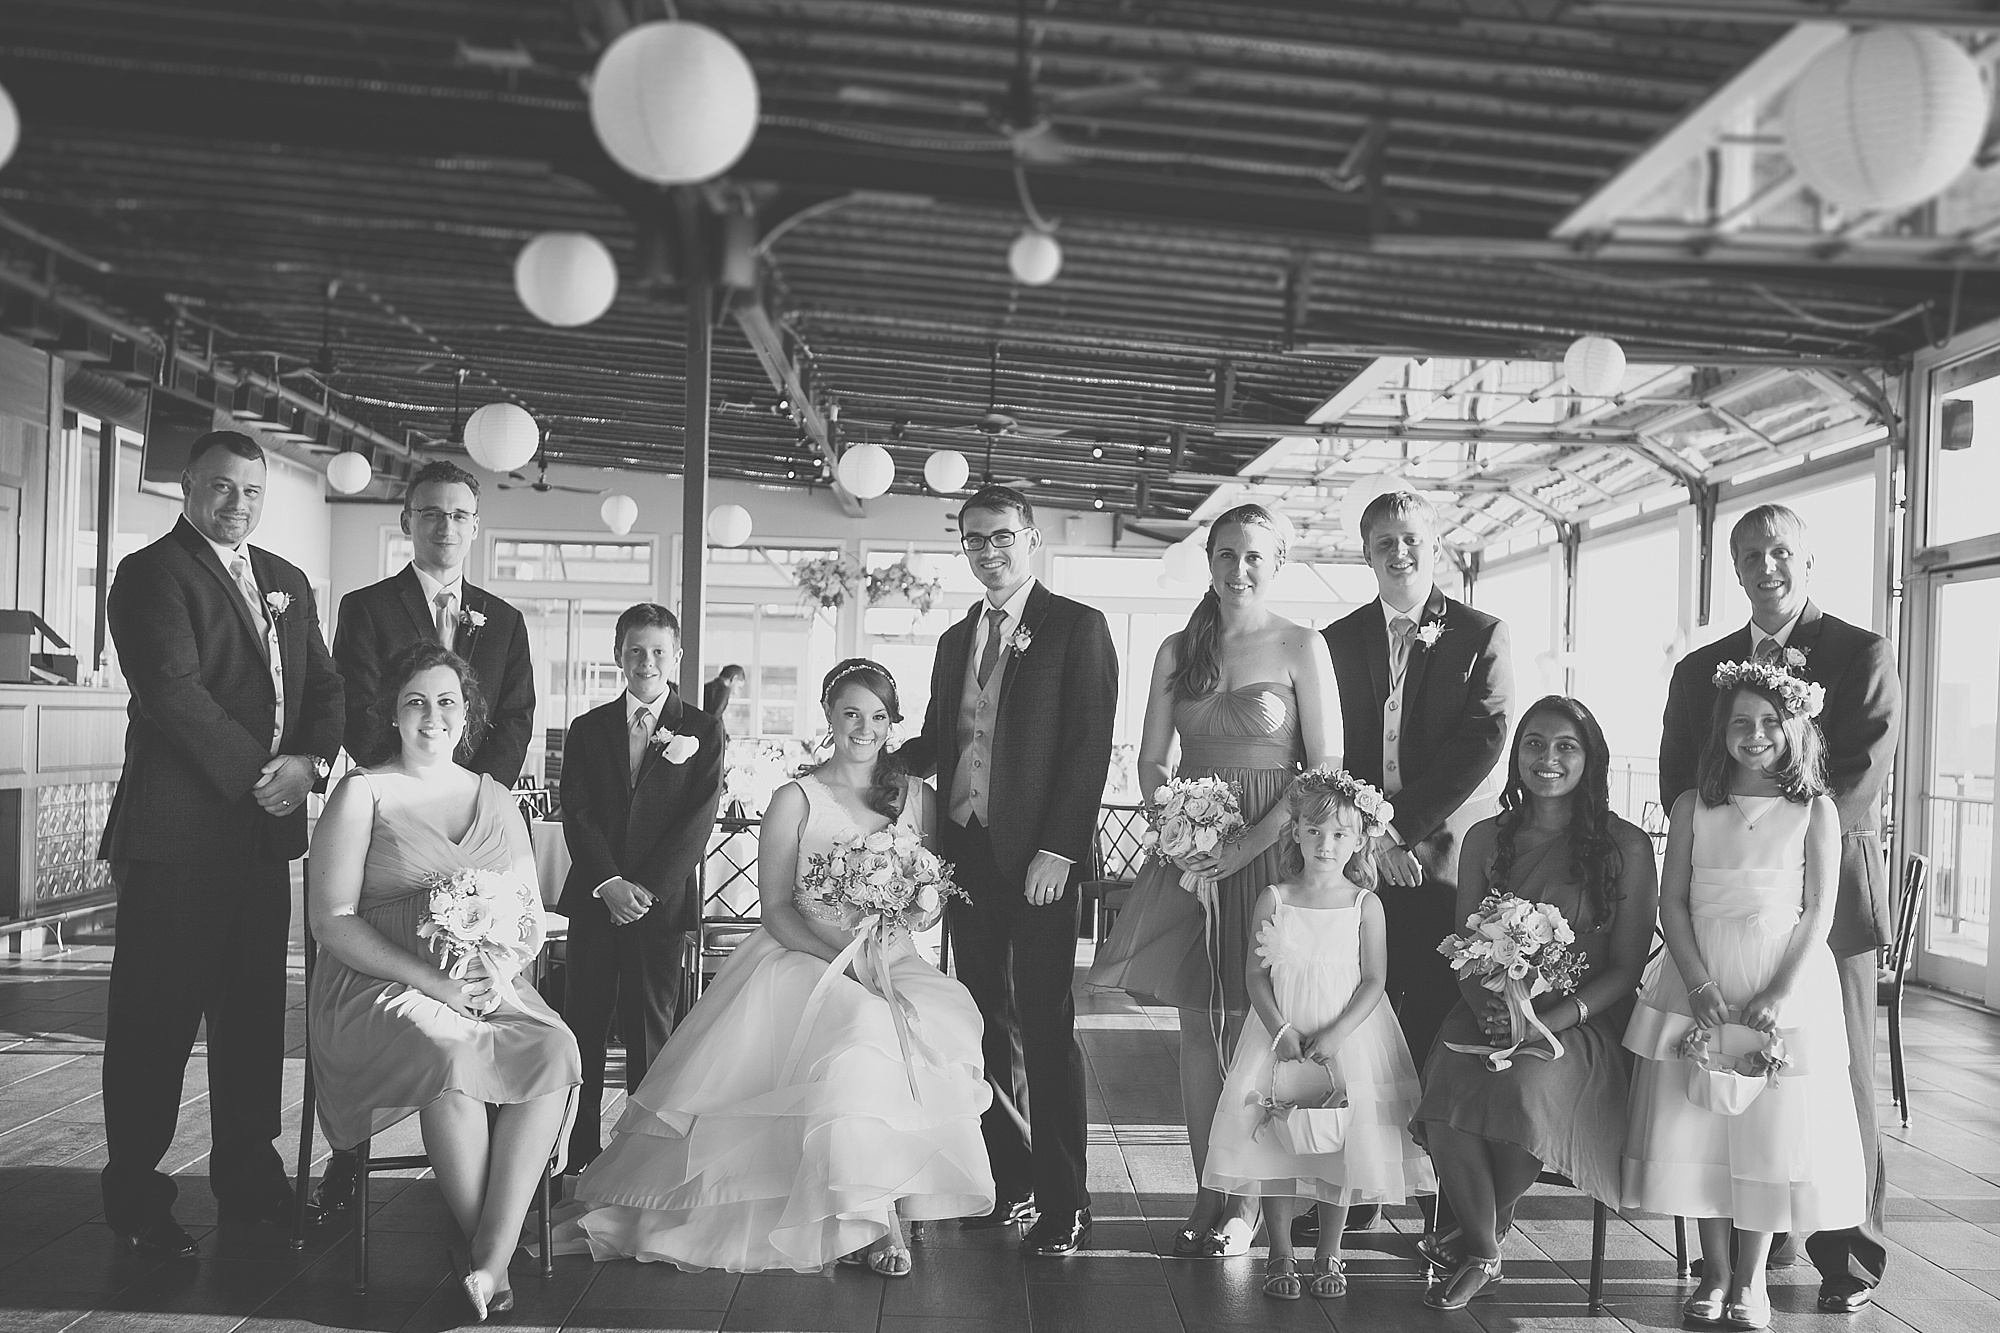 Joe_Mac_Creative_Rachel_and_Matt_Wedding_Photography_0021.jpg